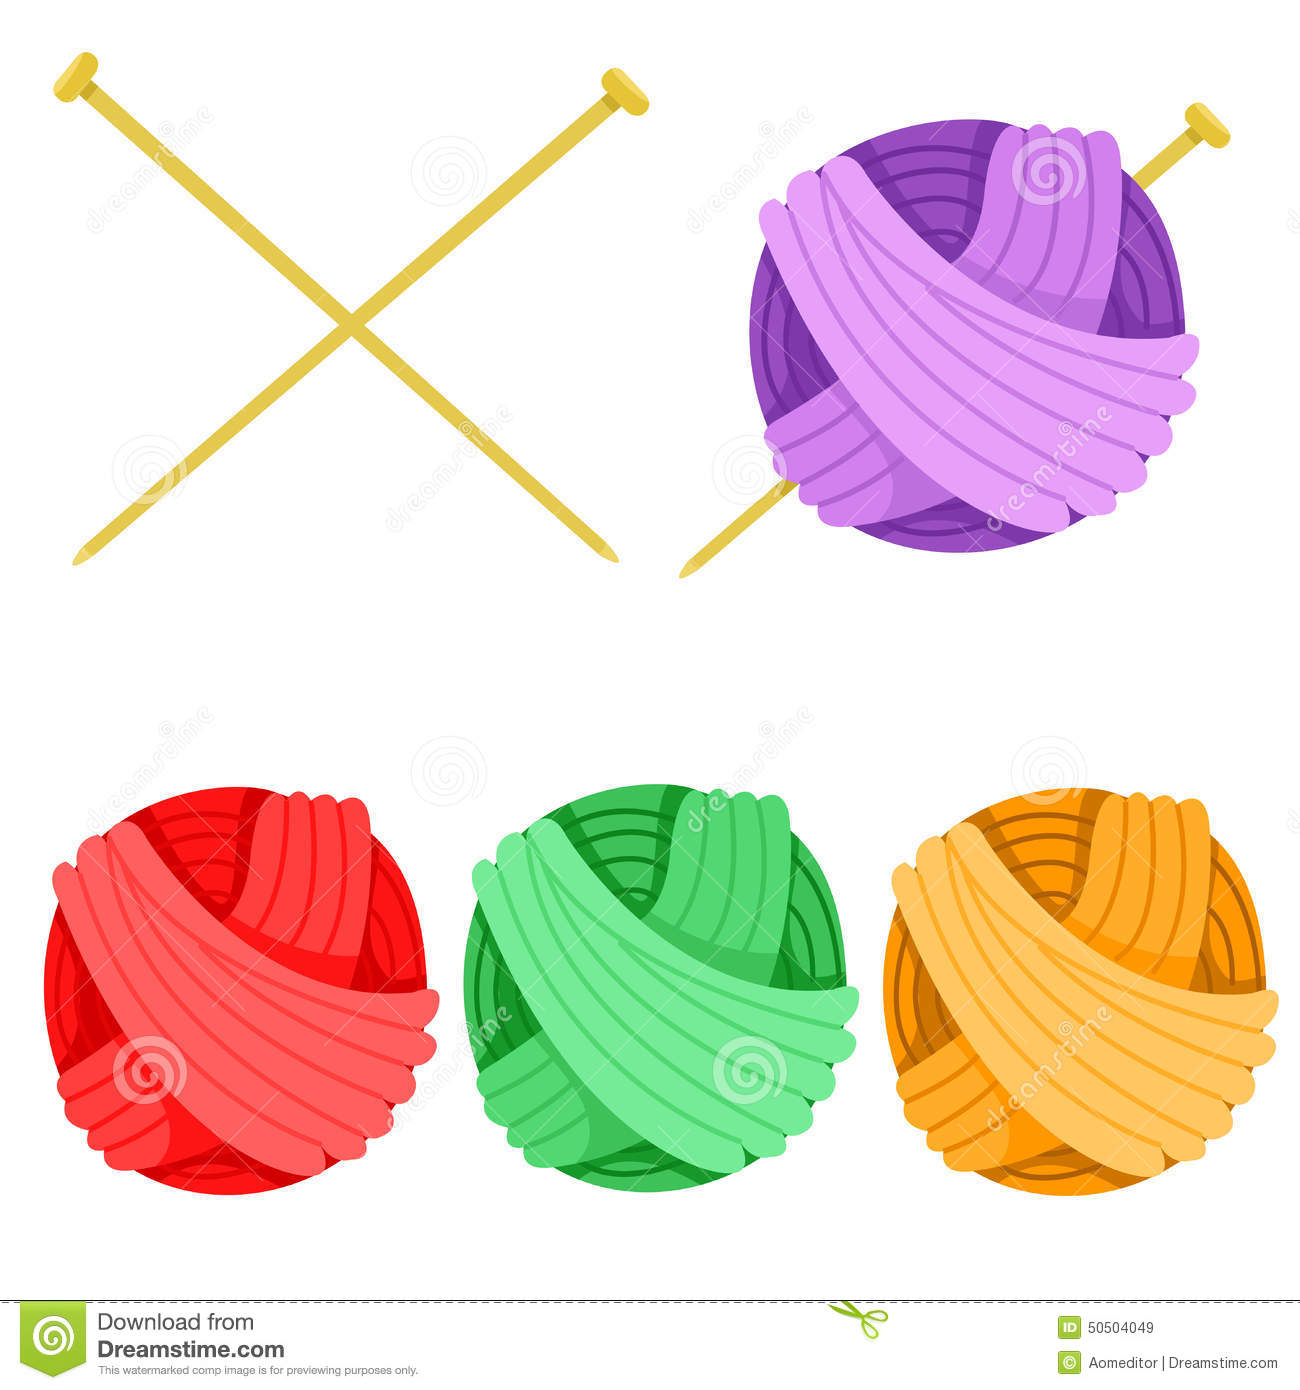 illustrator of yarn and color stock vector image 50504049